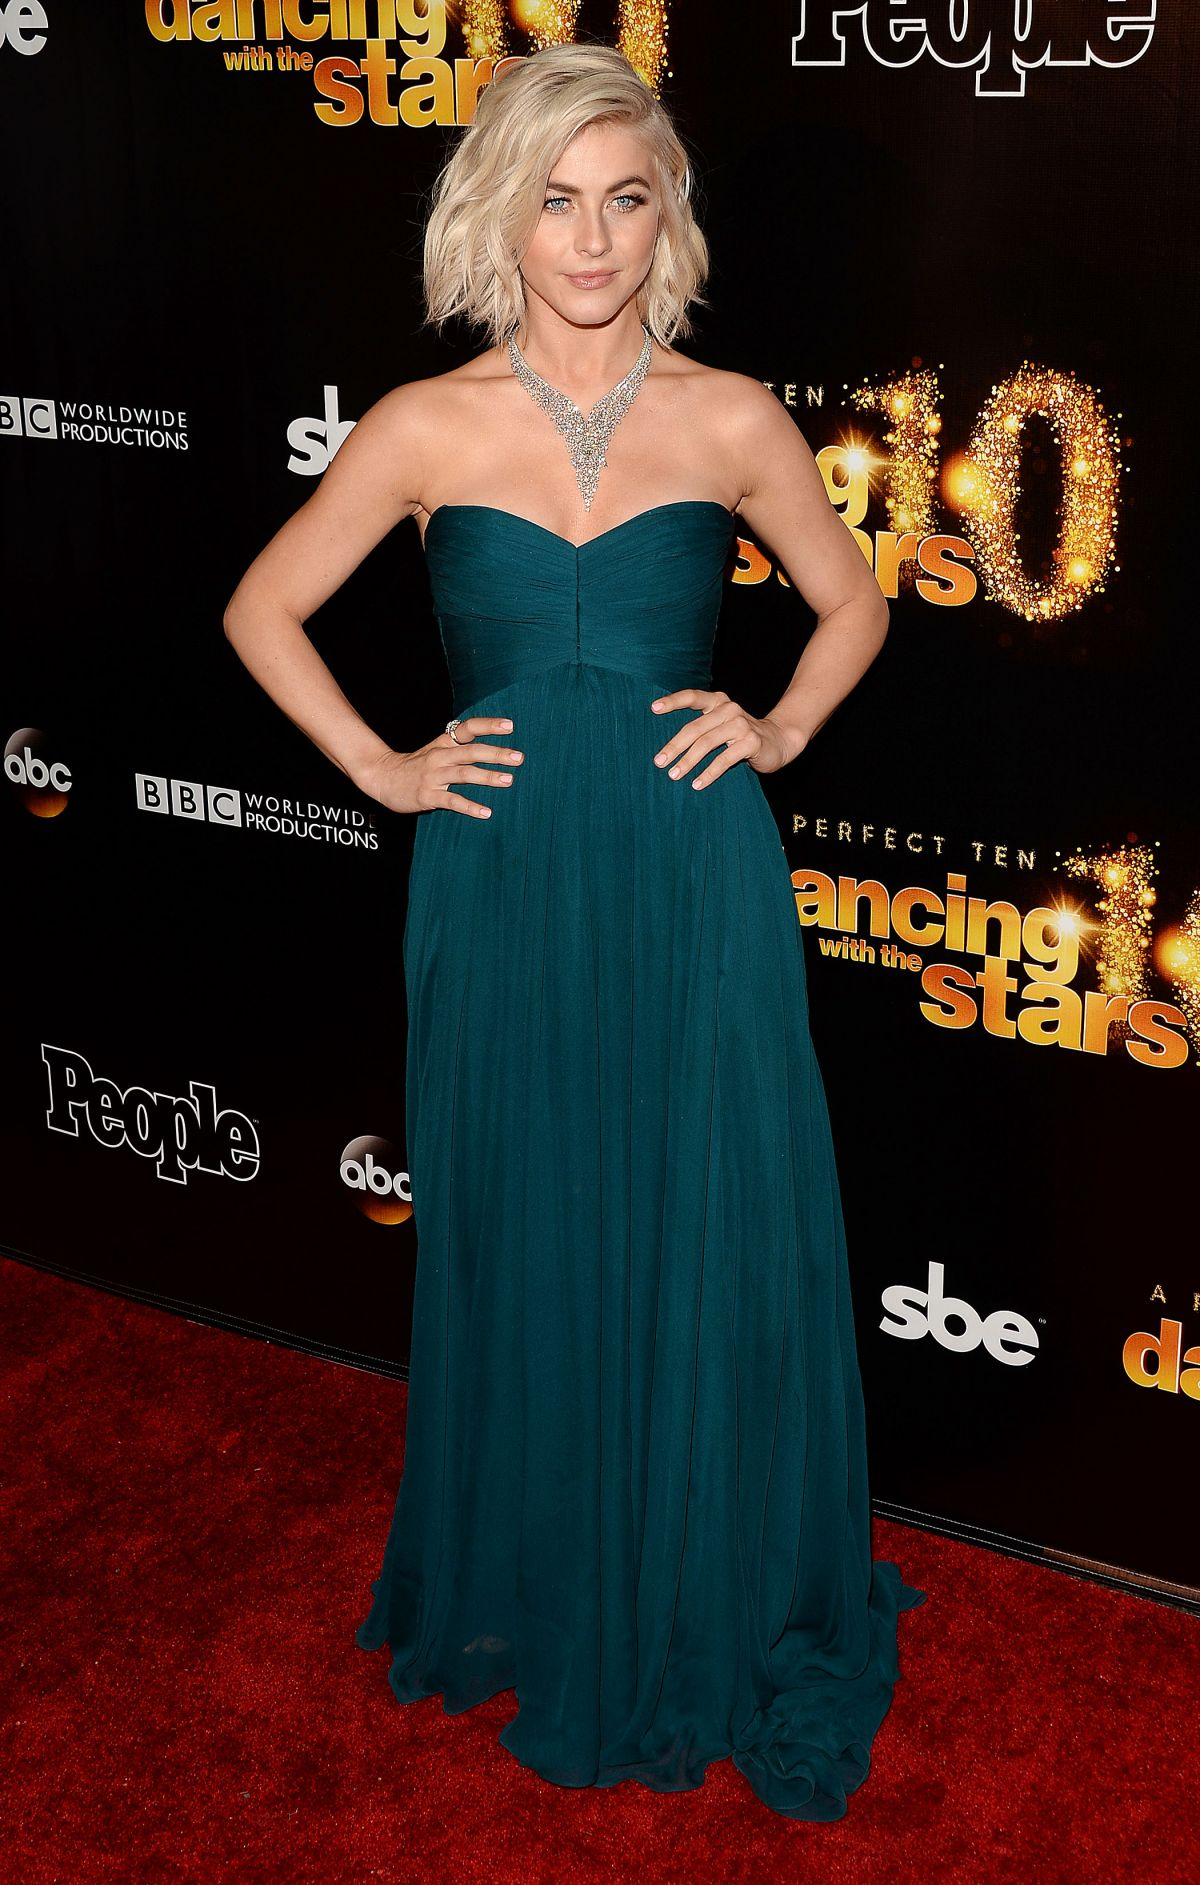 JULIANNE HOGH at Dancing with the Stars 10th Anniversary in West Hollywood